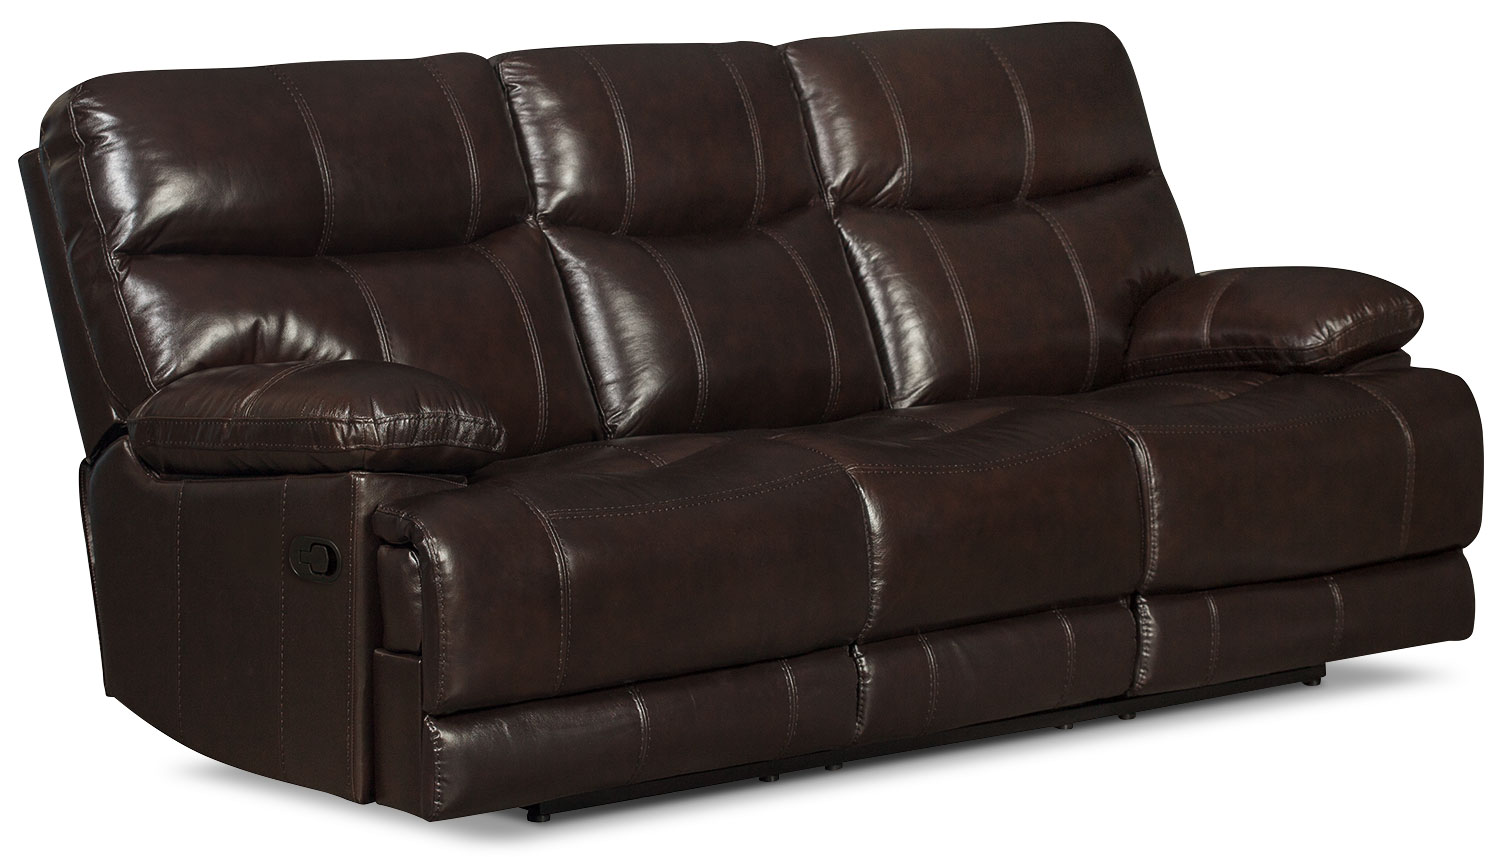 Gavin Genuine Leather Reclining Sofa – Brown